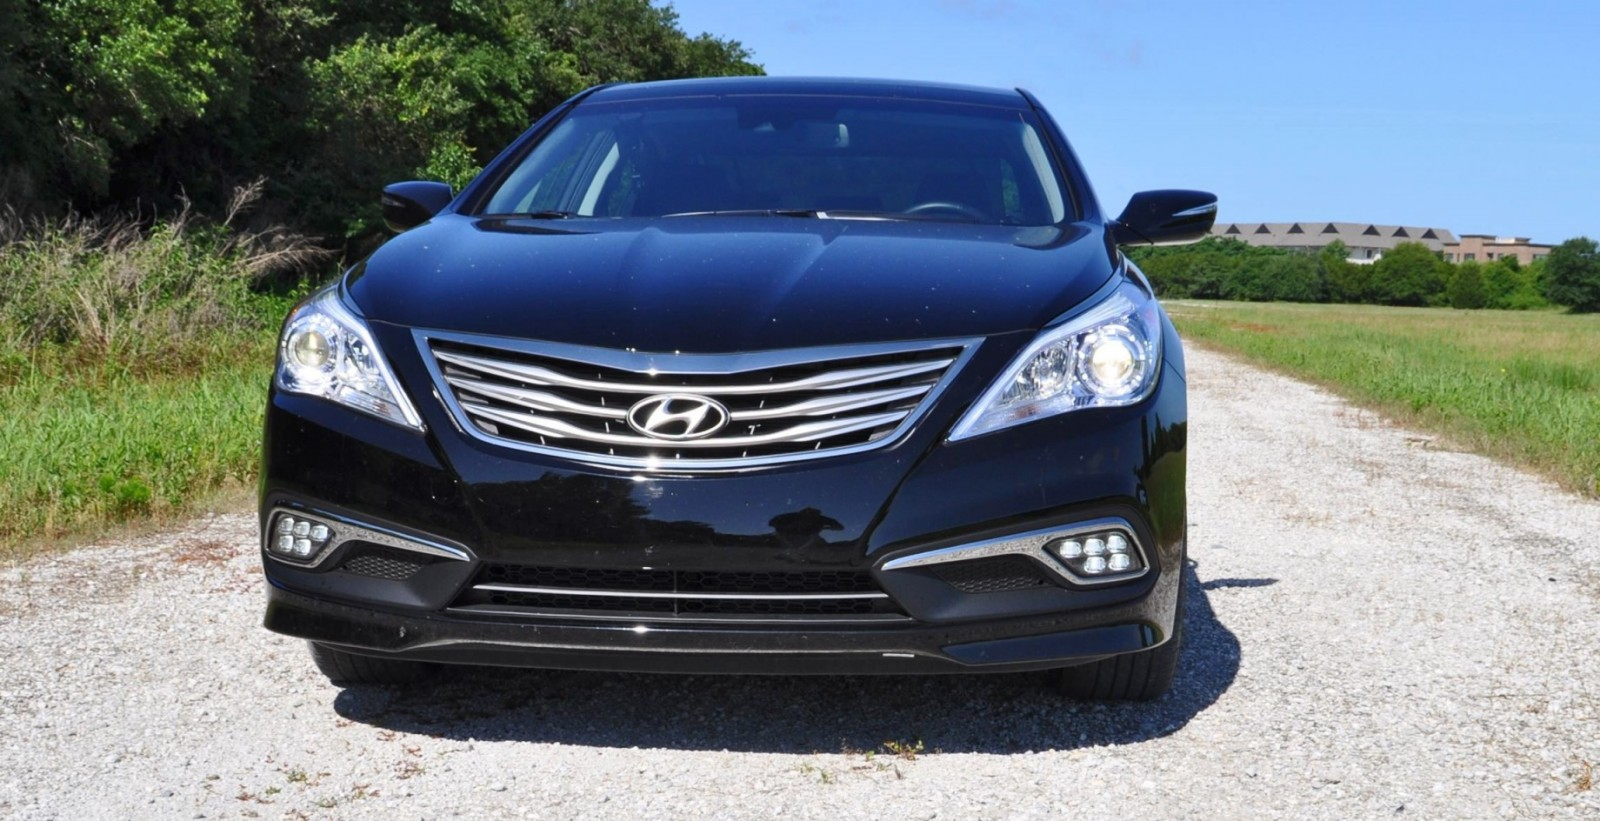 Road Test Review - 2015 Hyundai AZERA Limited 16